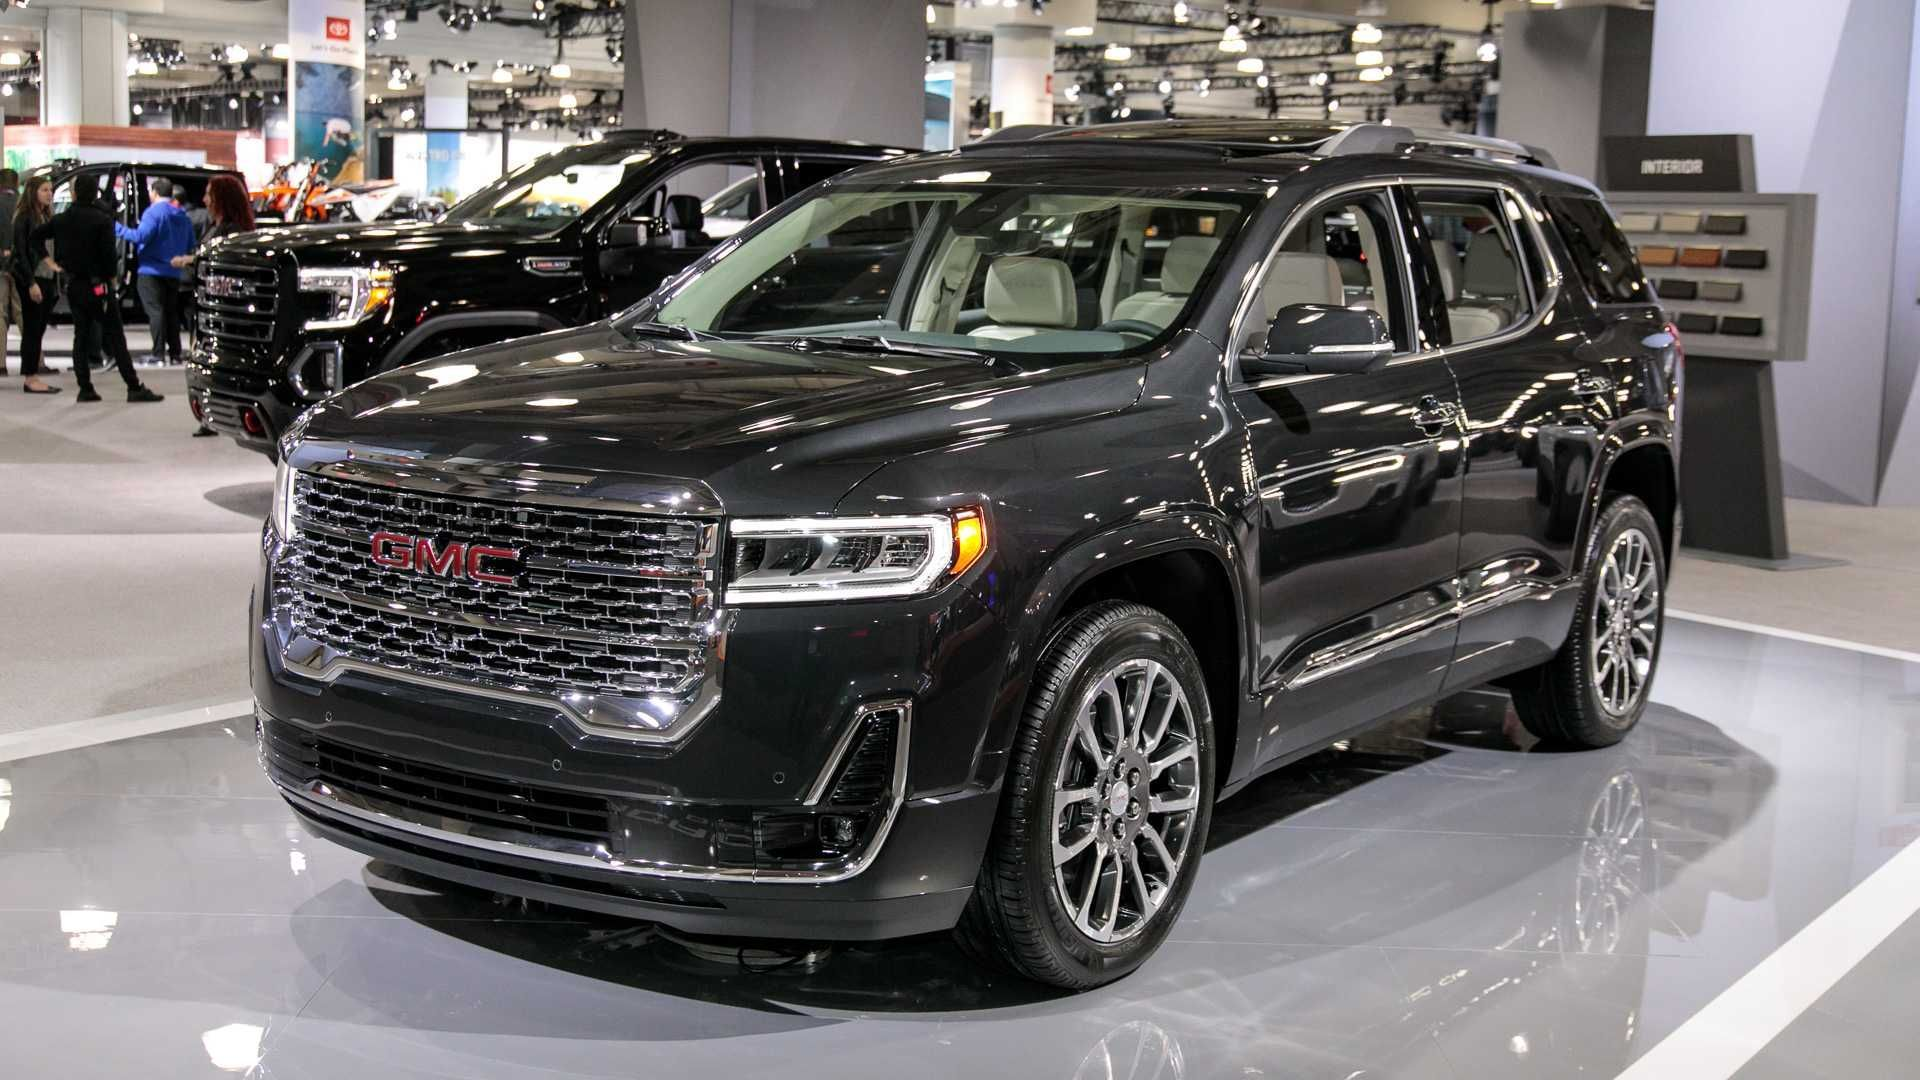 New Gmc Acadia 2021 Worth And Launch Date In 2020 Gmc Vehicles Acadia Denali Suv